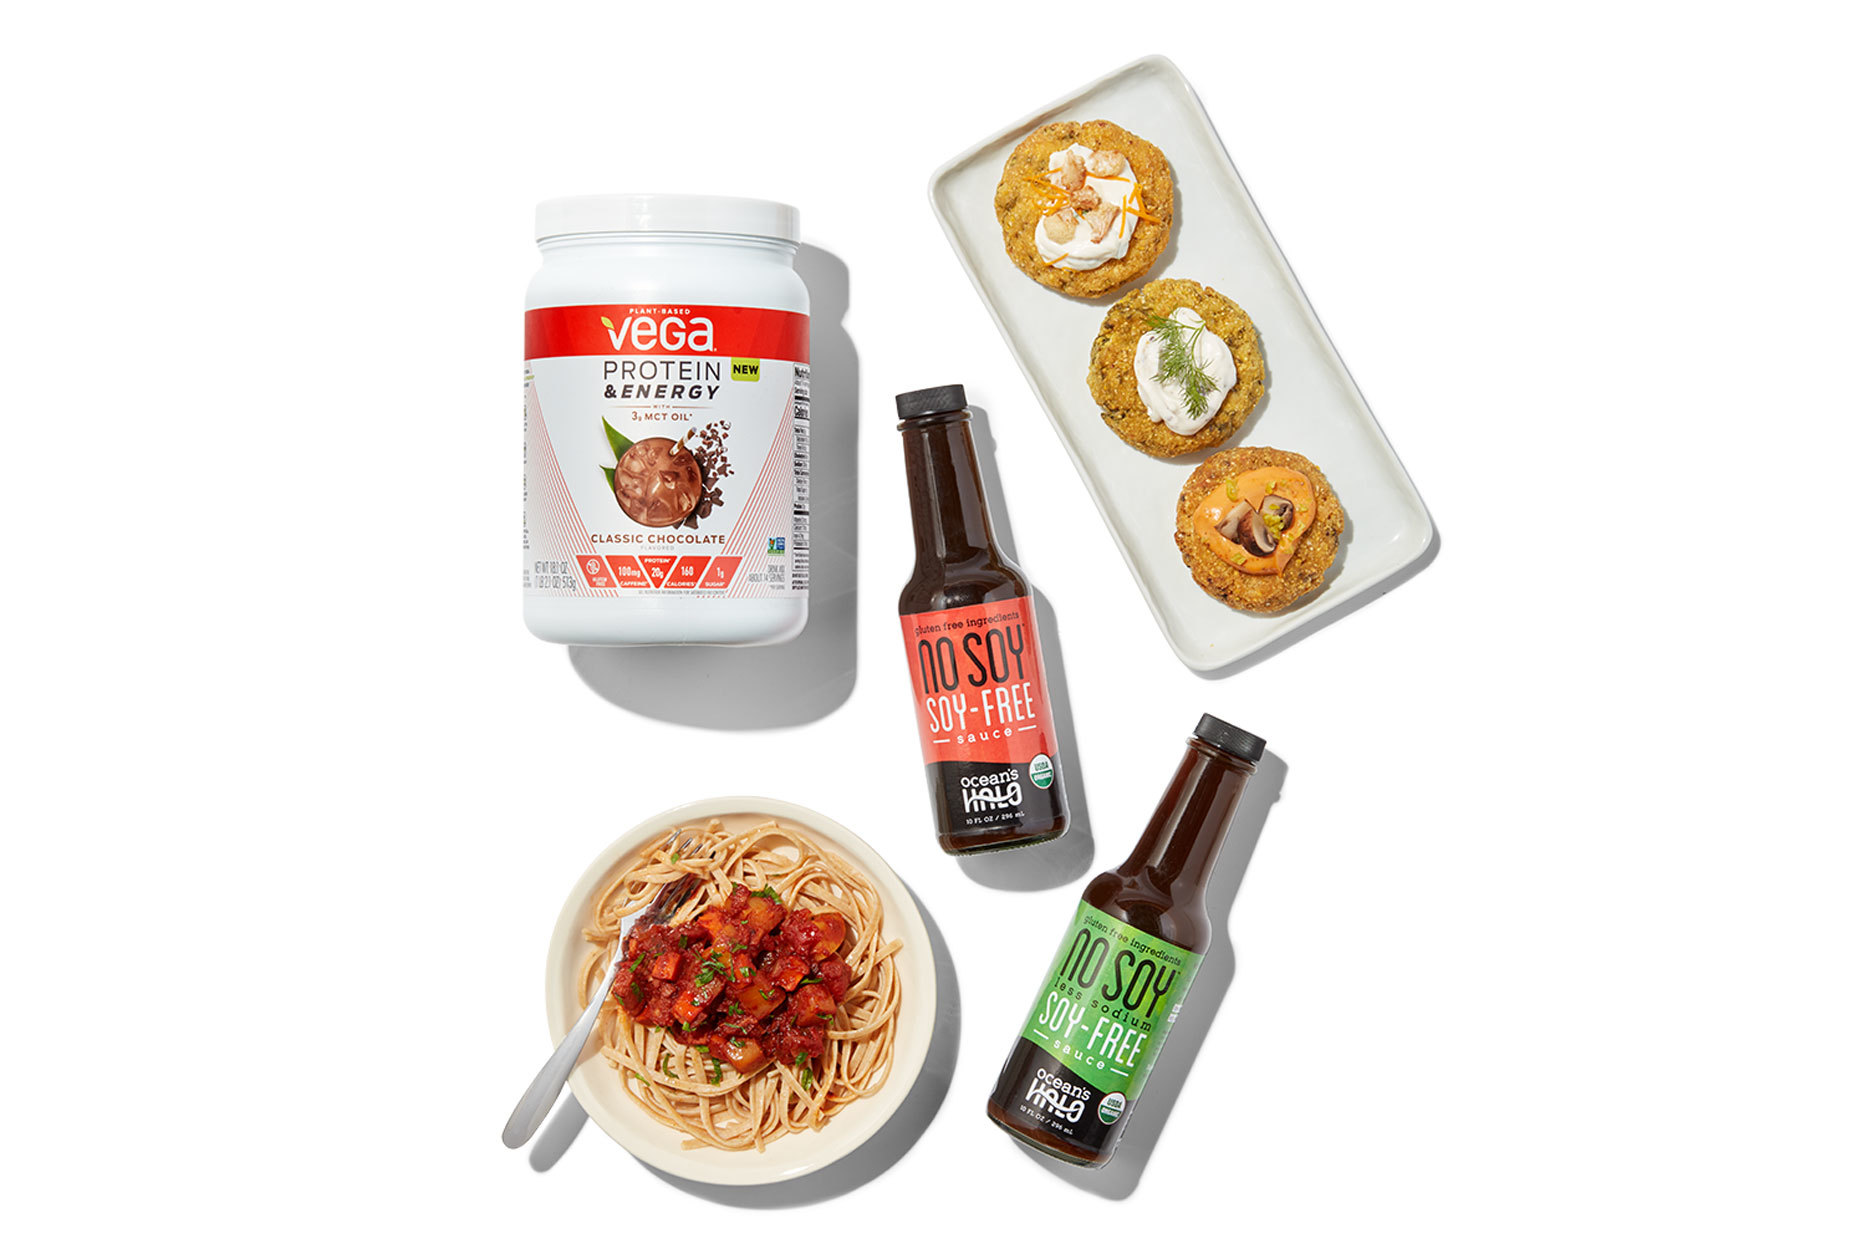 Various soy-free plant protein products